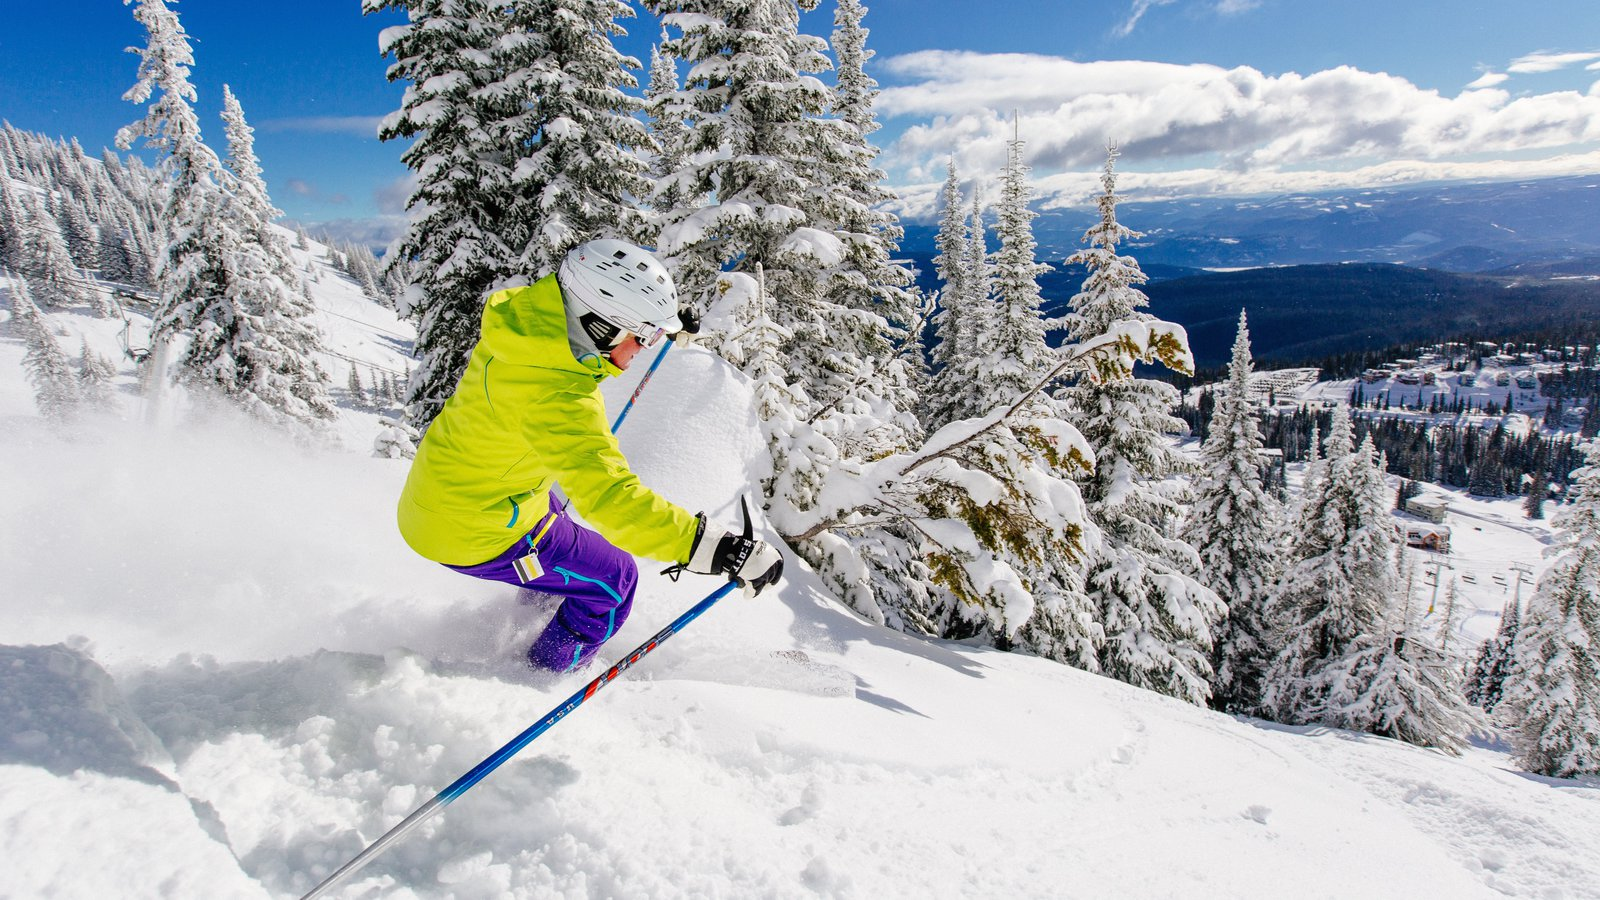 silver star mountain resort pictures: view photos & images of silver